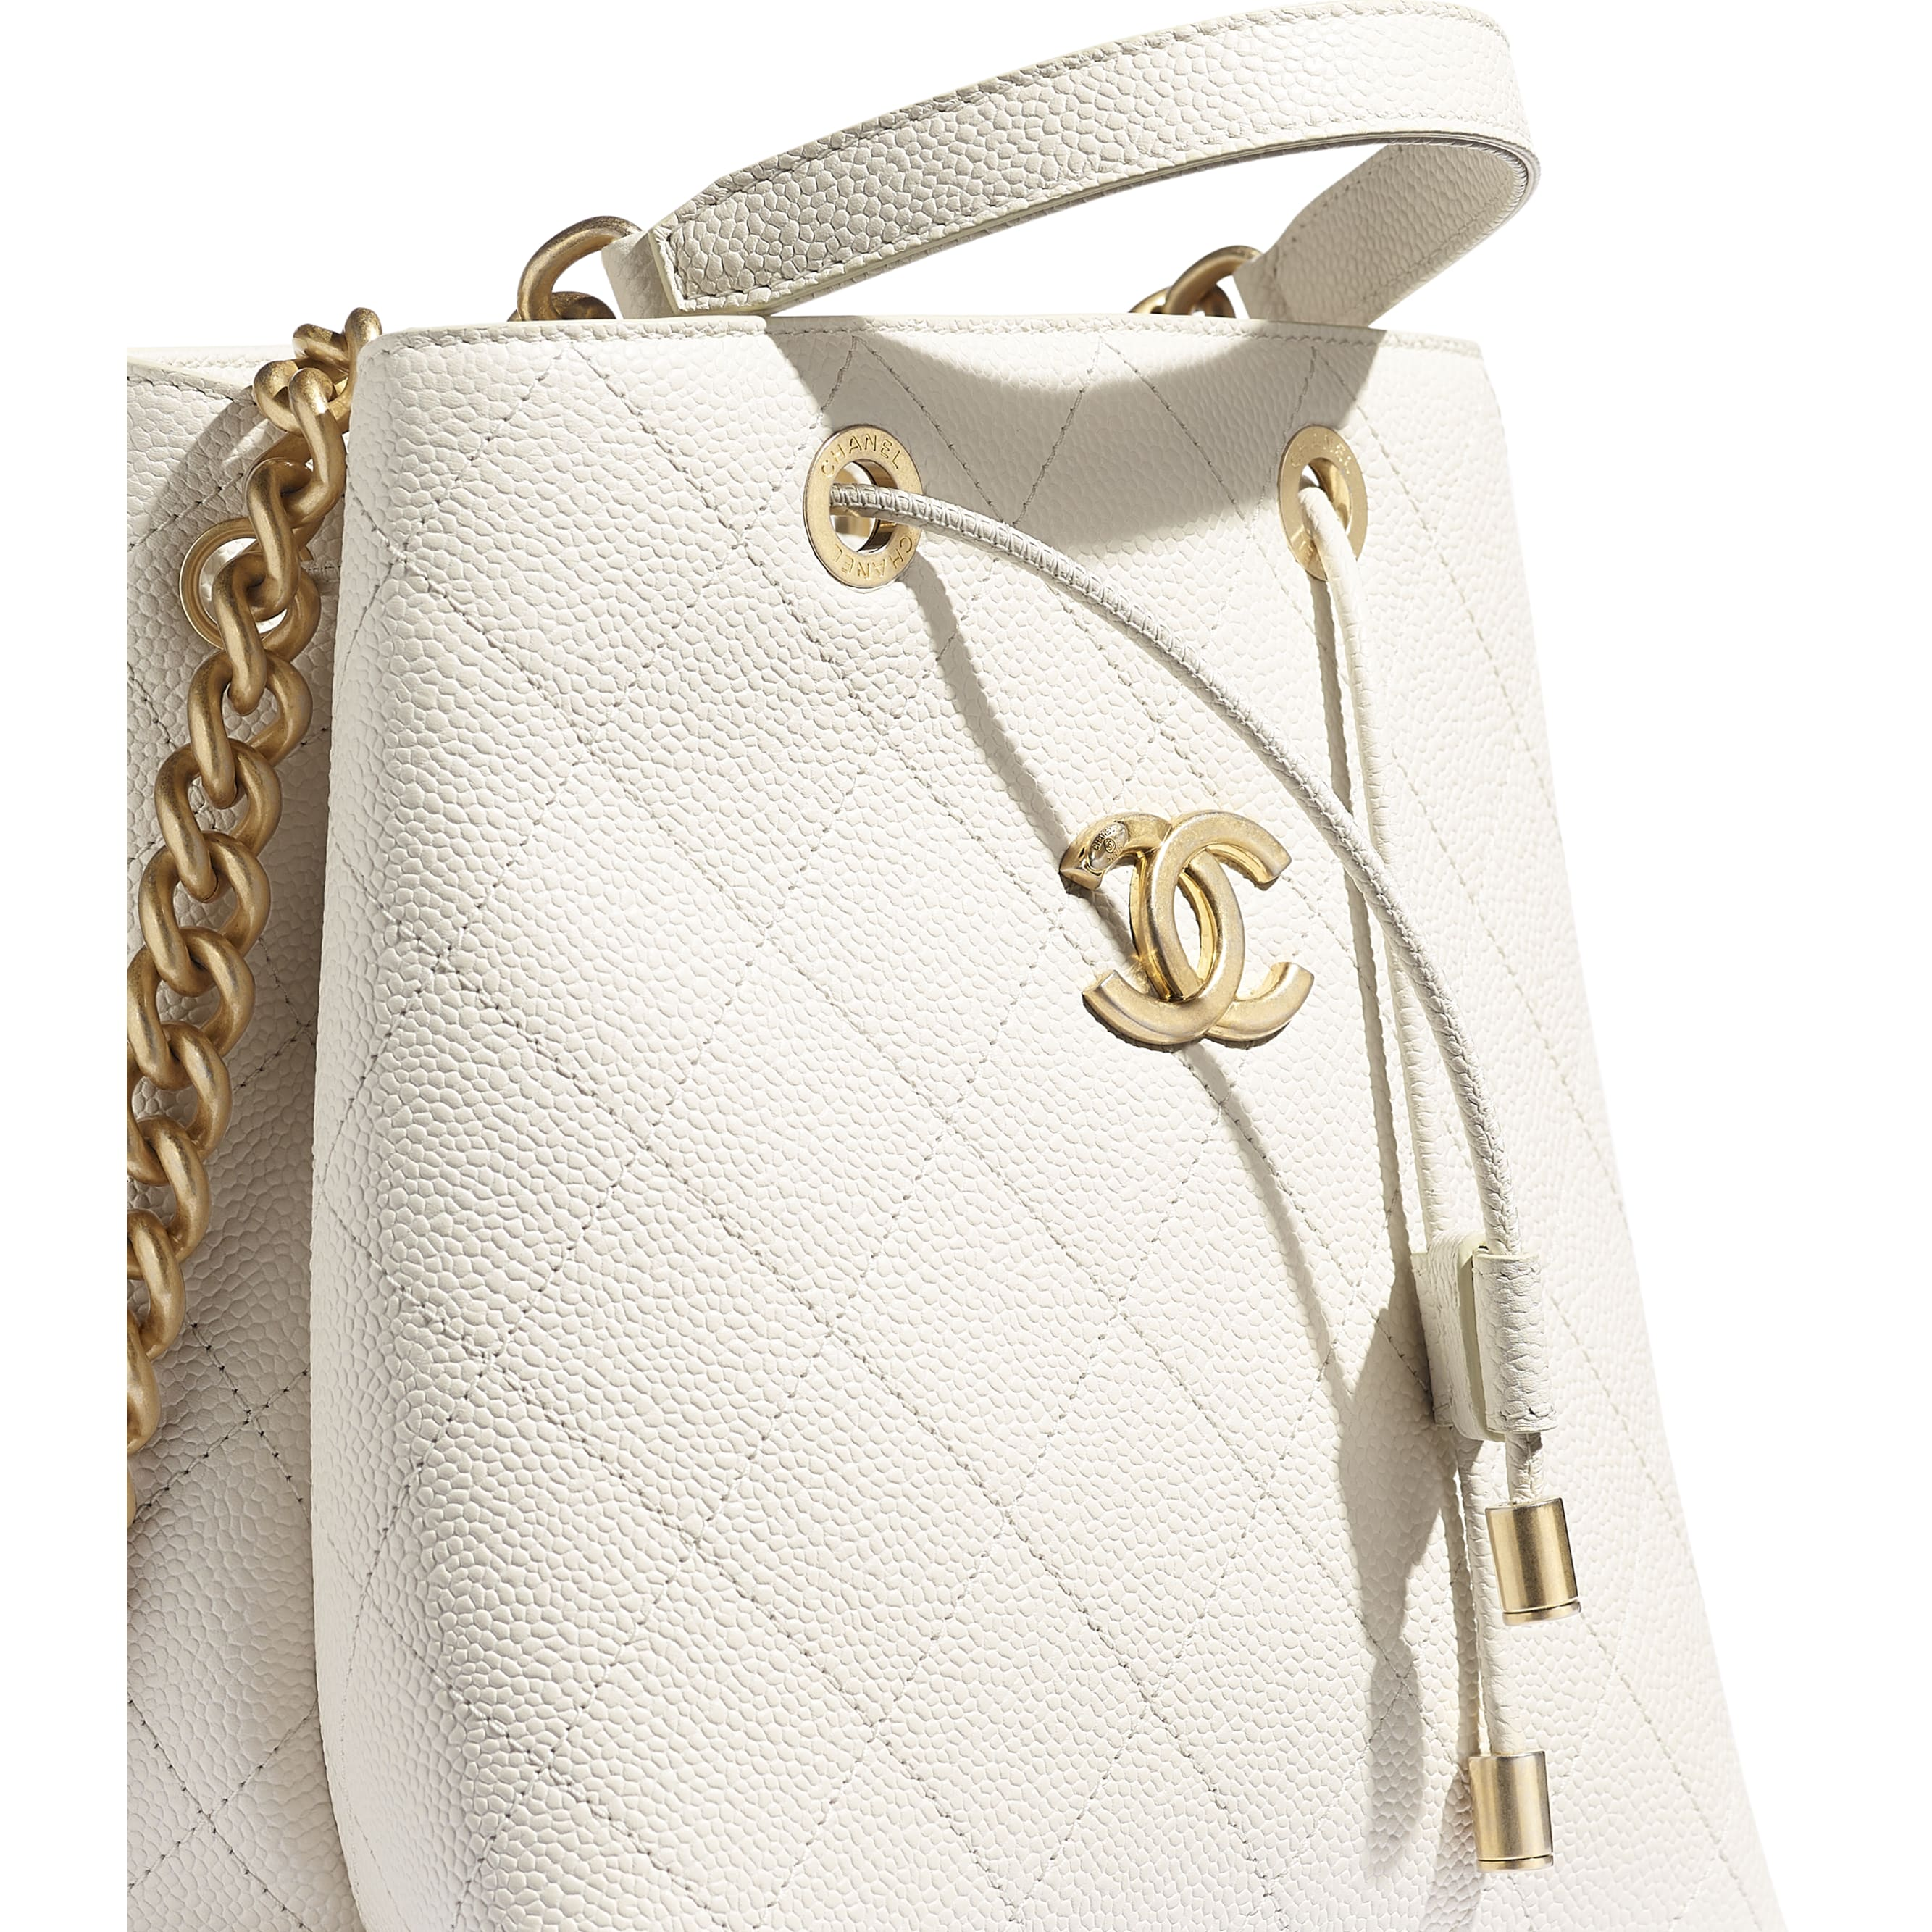 Drawstring Bag - White - Grained Calfskin & Gold-Tone Metal - CHANEL - Extra view - see standard sized version